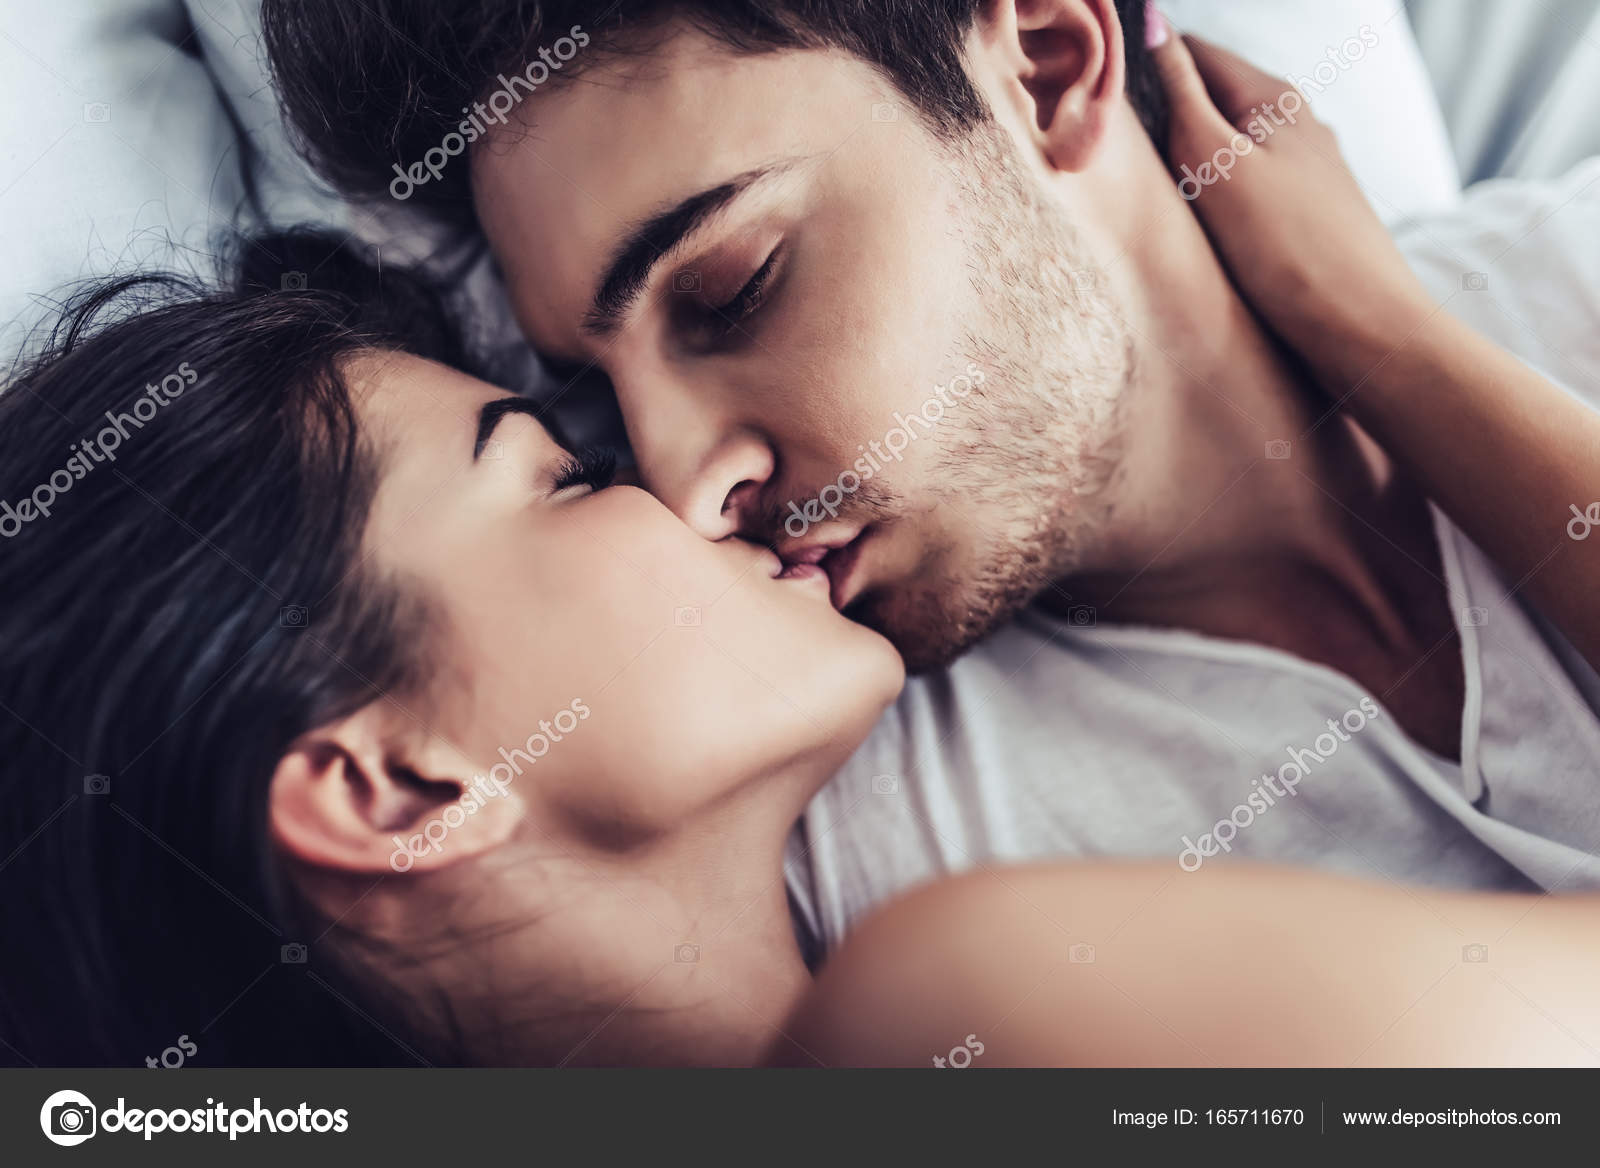 Close Up Of Happy Couple Is Lying In Bed Together Kissing And Enjoying The Company Each Other Photo By 4pmphotogmail